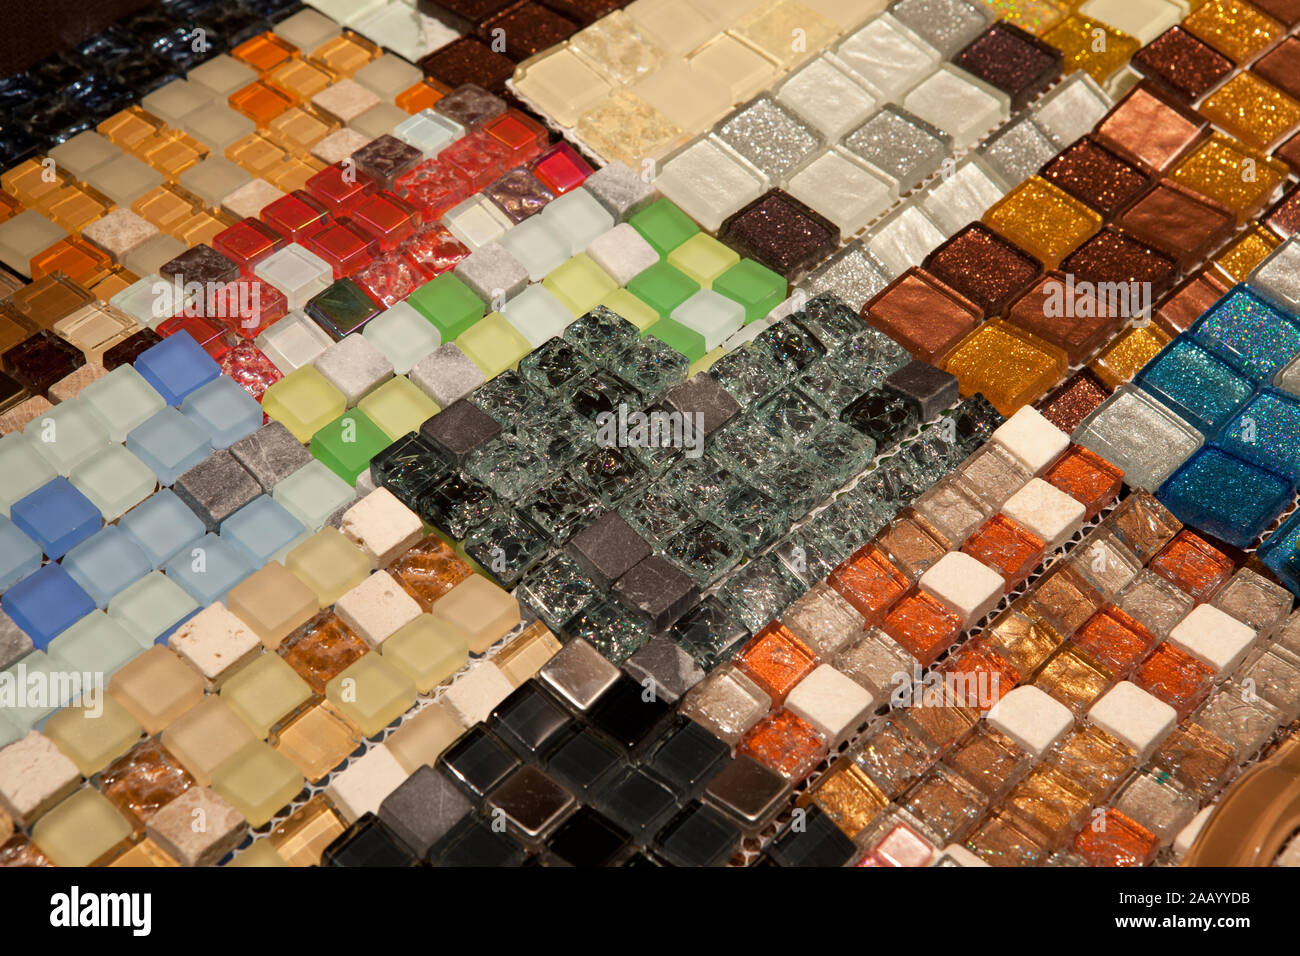 Mosaic Tiles Texture Of Different Colors And Shades Bathroom To The Kitchen Floor And Walls Are Used To Repair The Premises Structure Design Decor Stock Photo Alamy